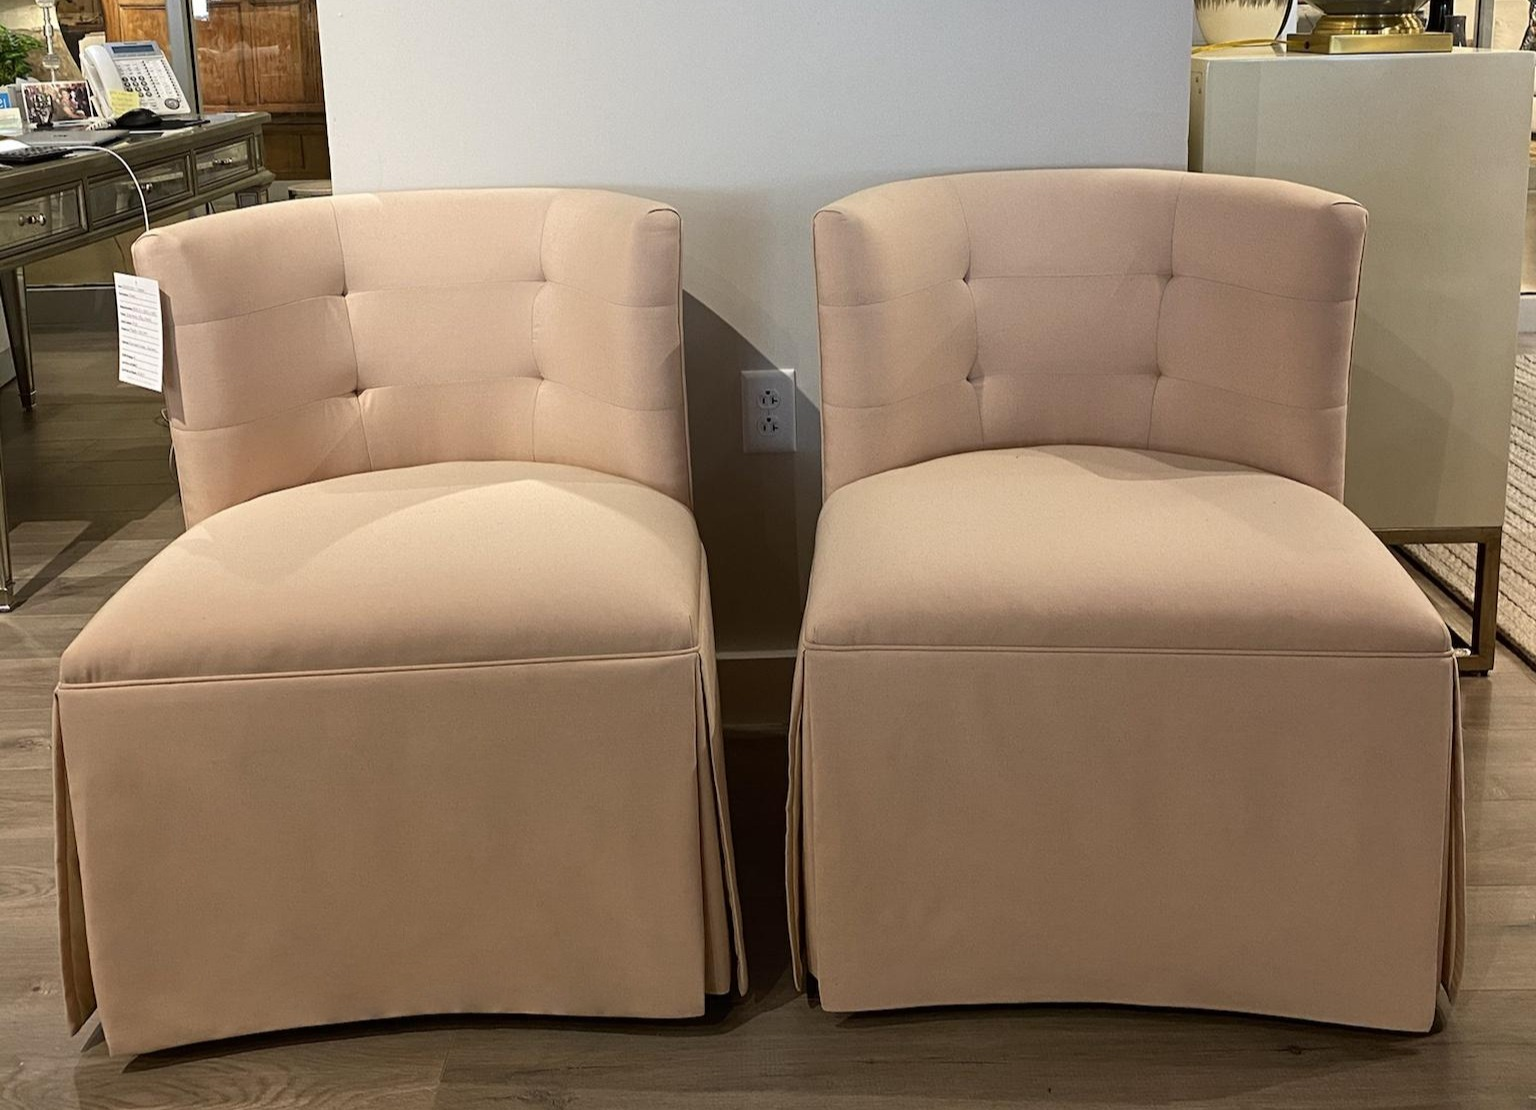 $2,500 - Chairs (2)